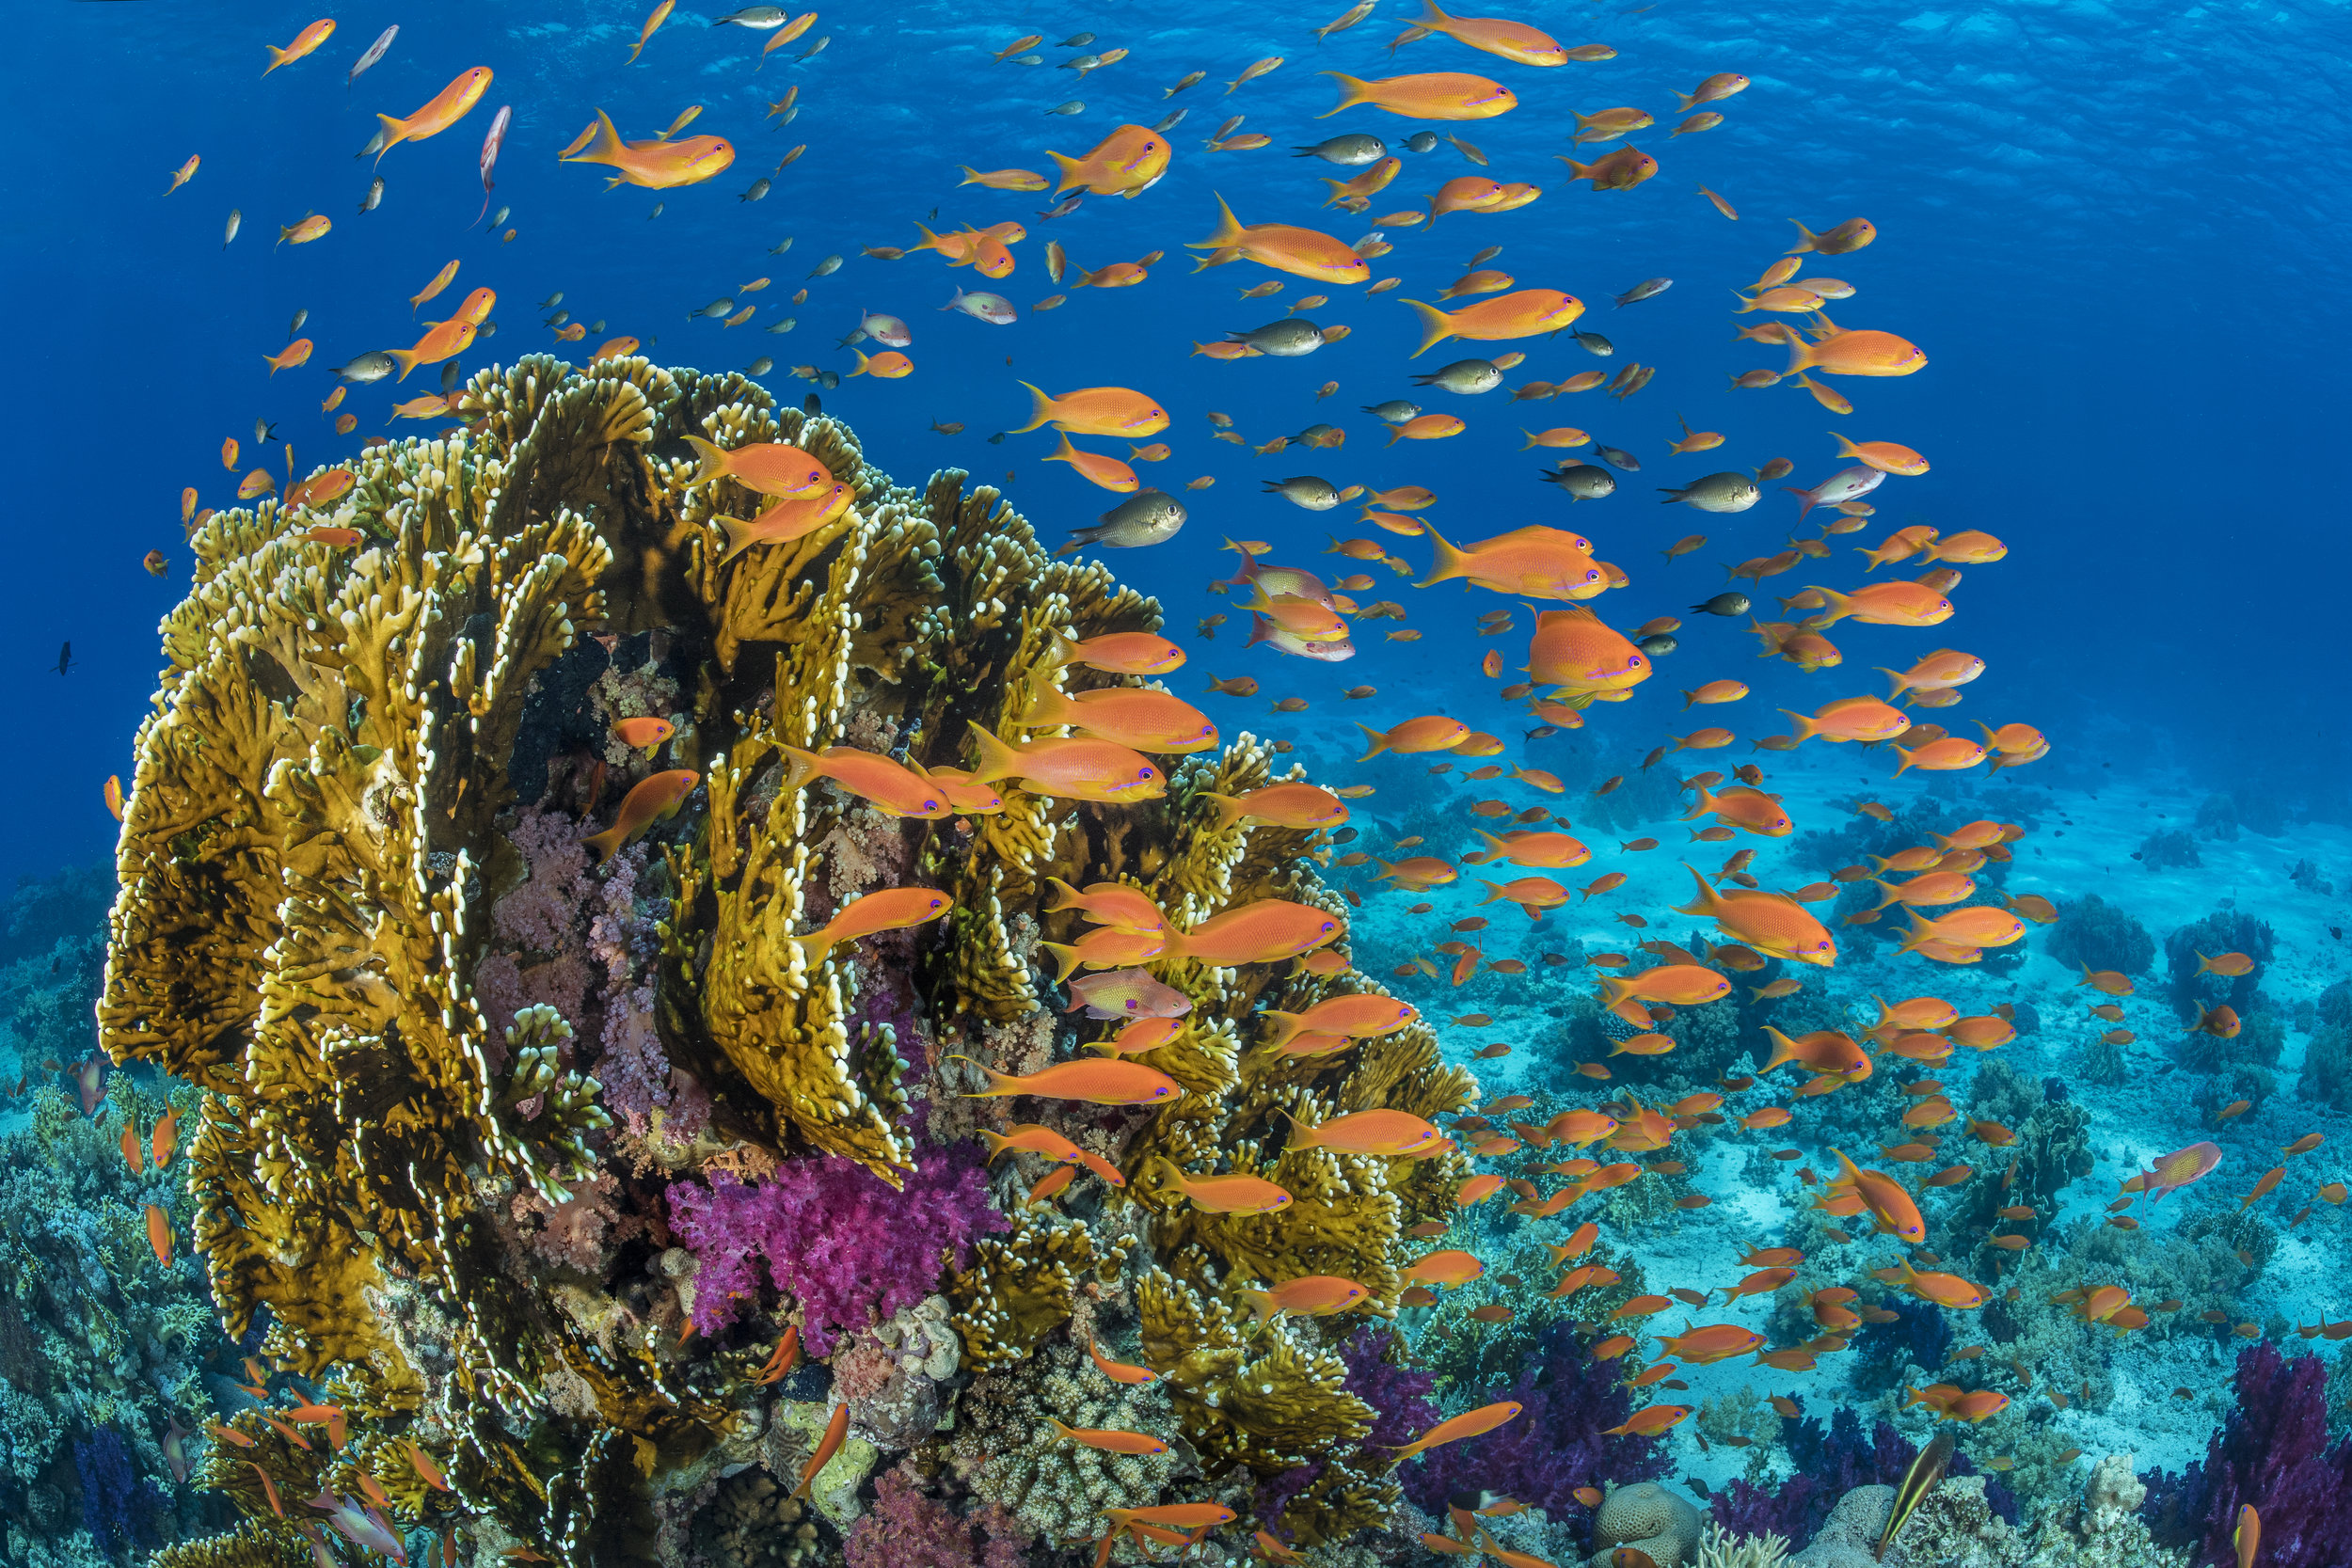 05 - fish on a reef in RAS MOHAMMED NATIONAL PARK, EGYPT credit: alex mustard / coral reef image bank